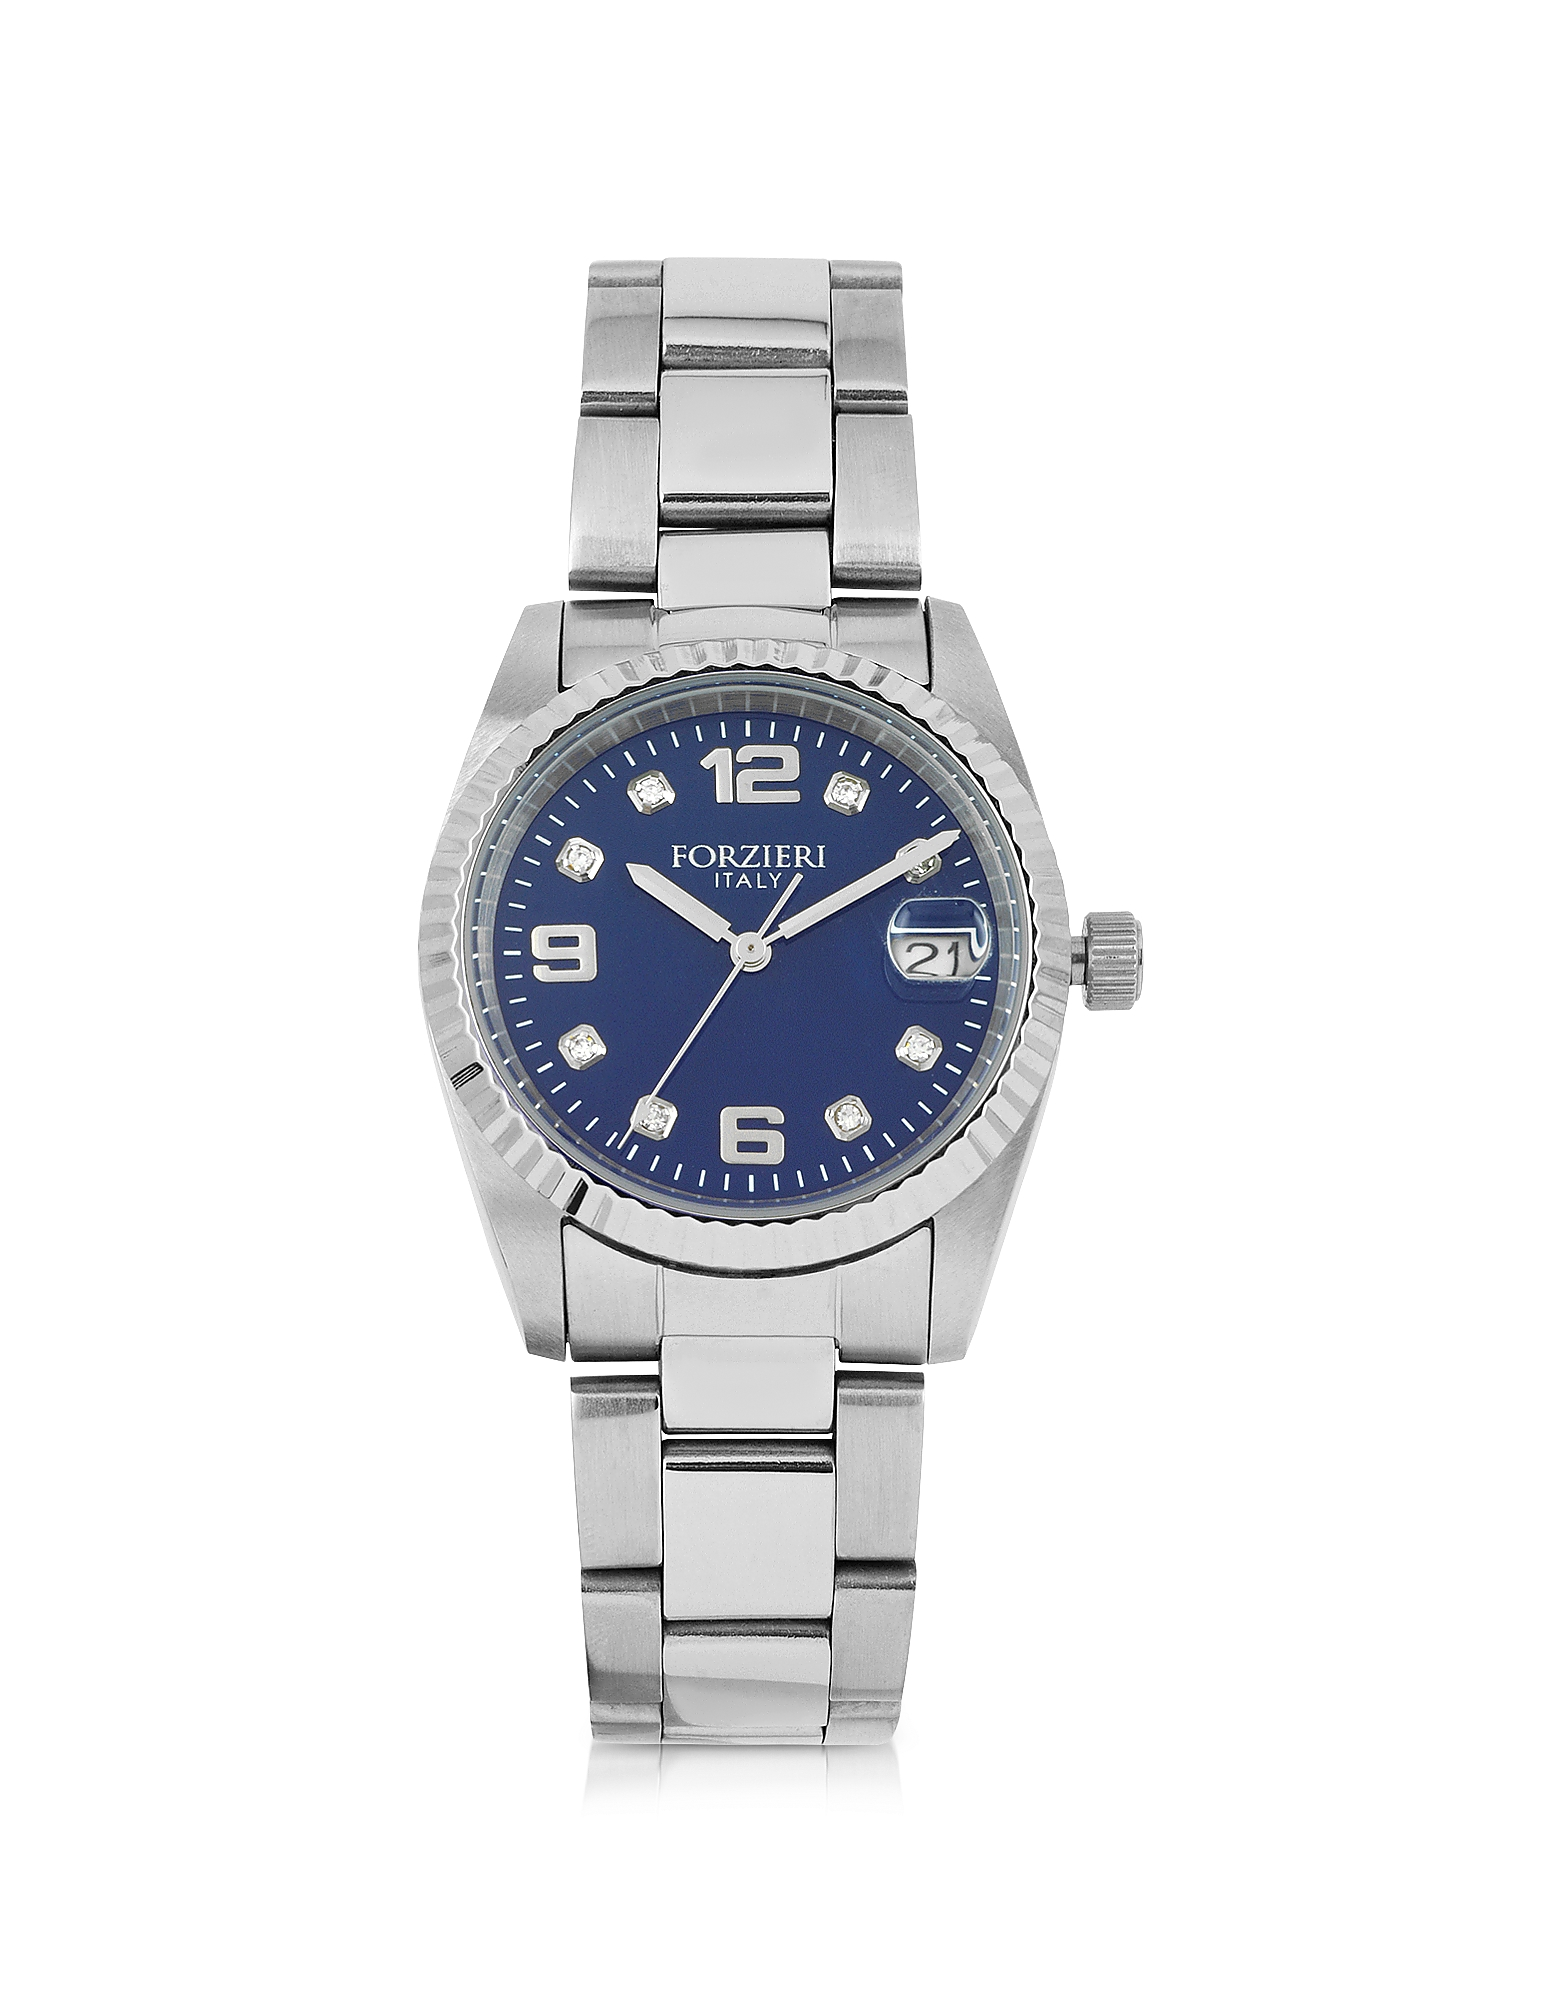 Forzieri Designer Women's Watches, Sabina Silver Tone Stainless Steel Women's Watch